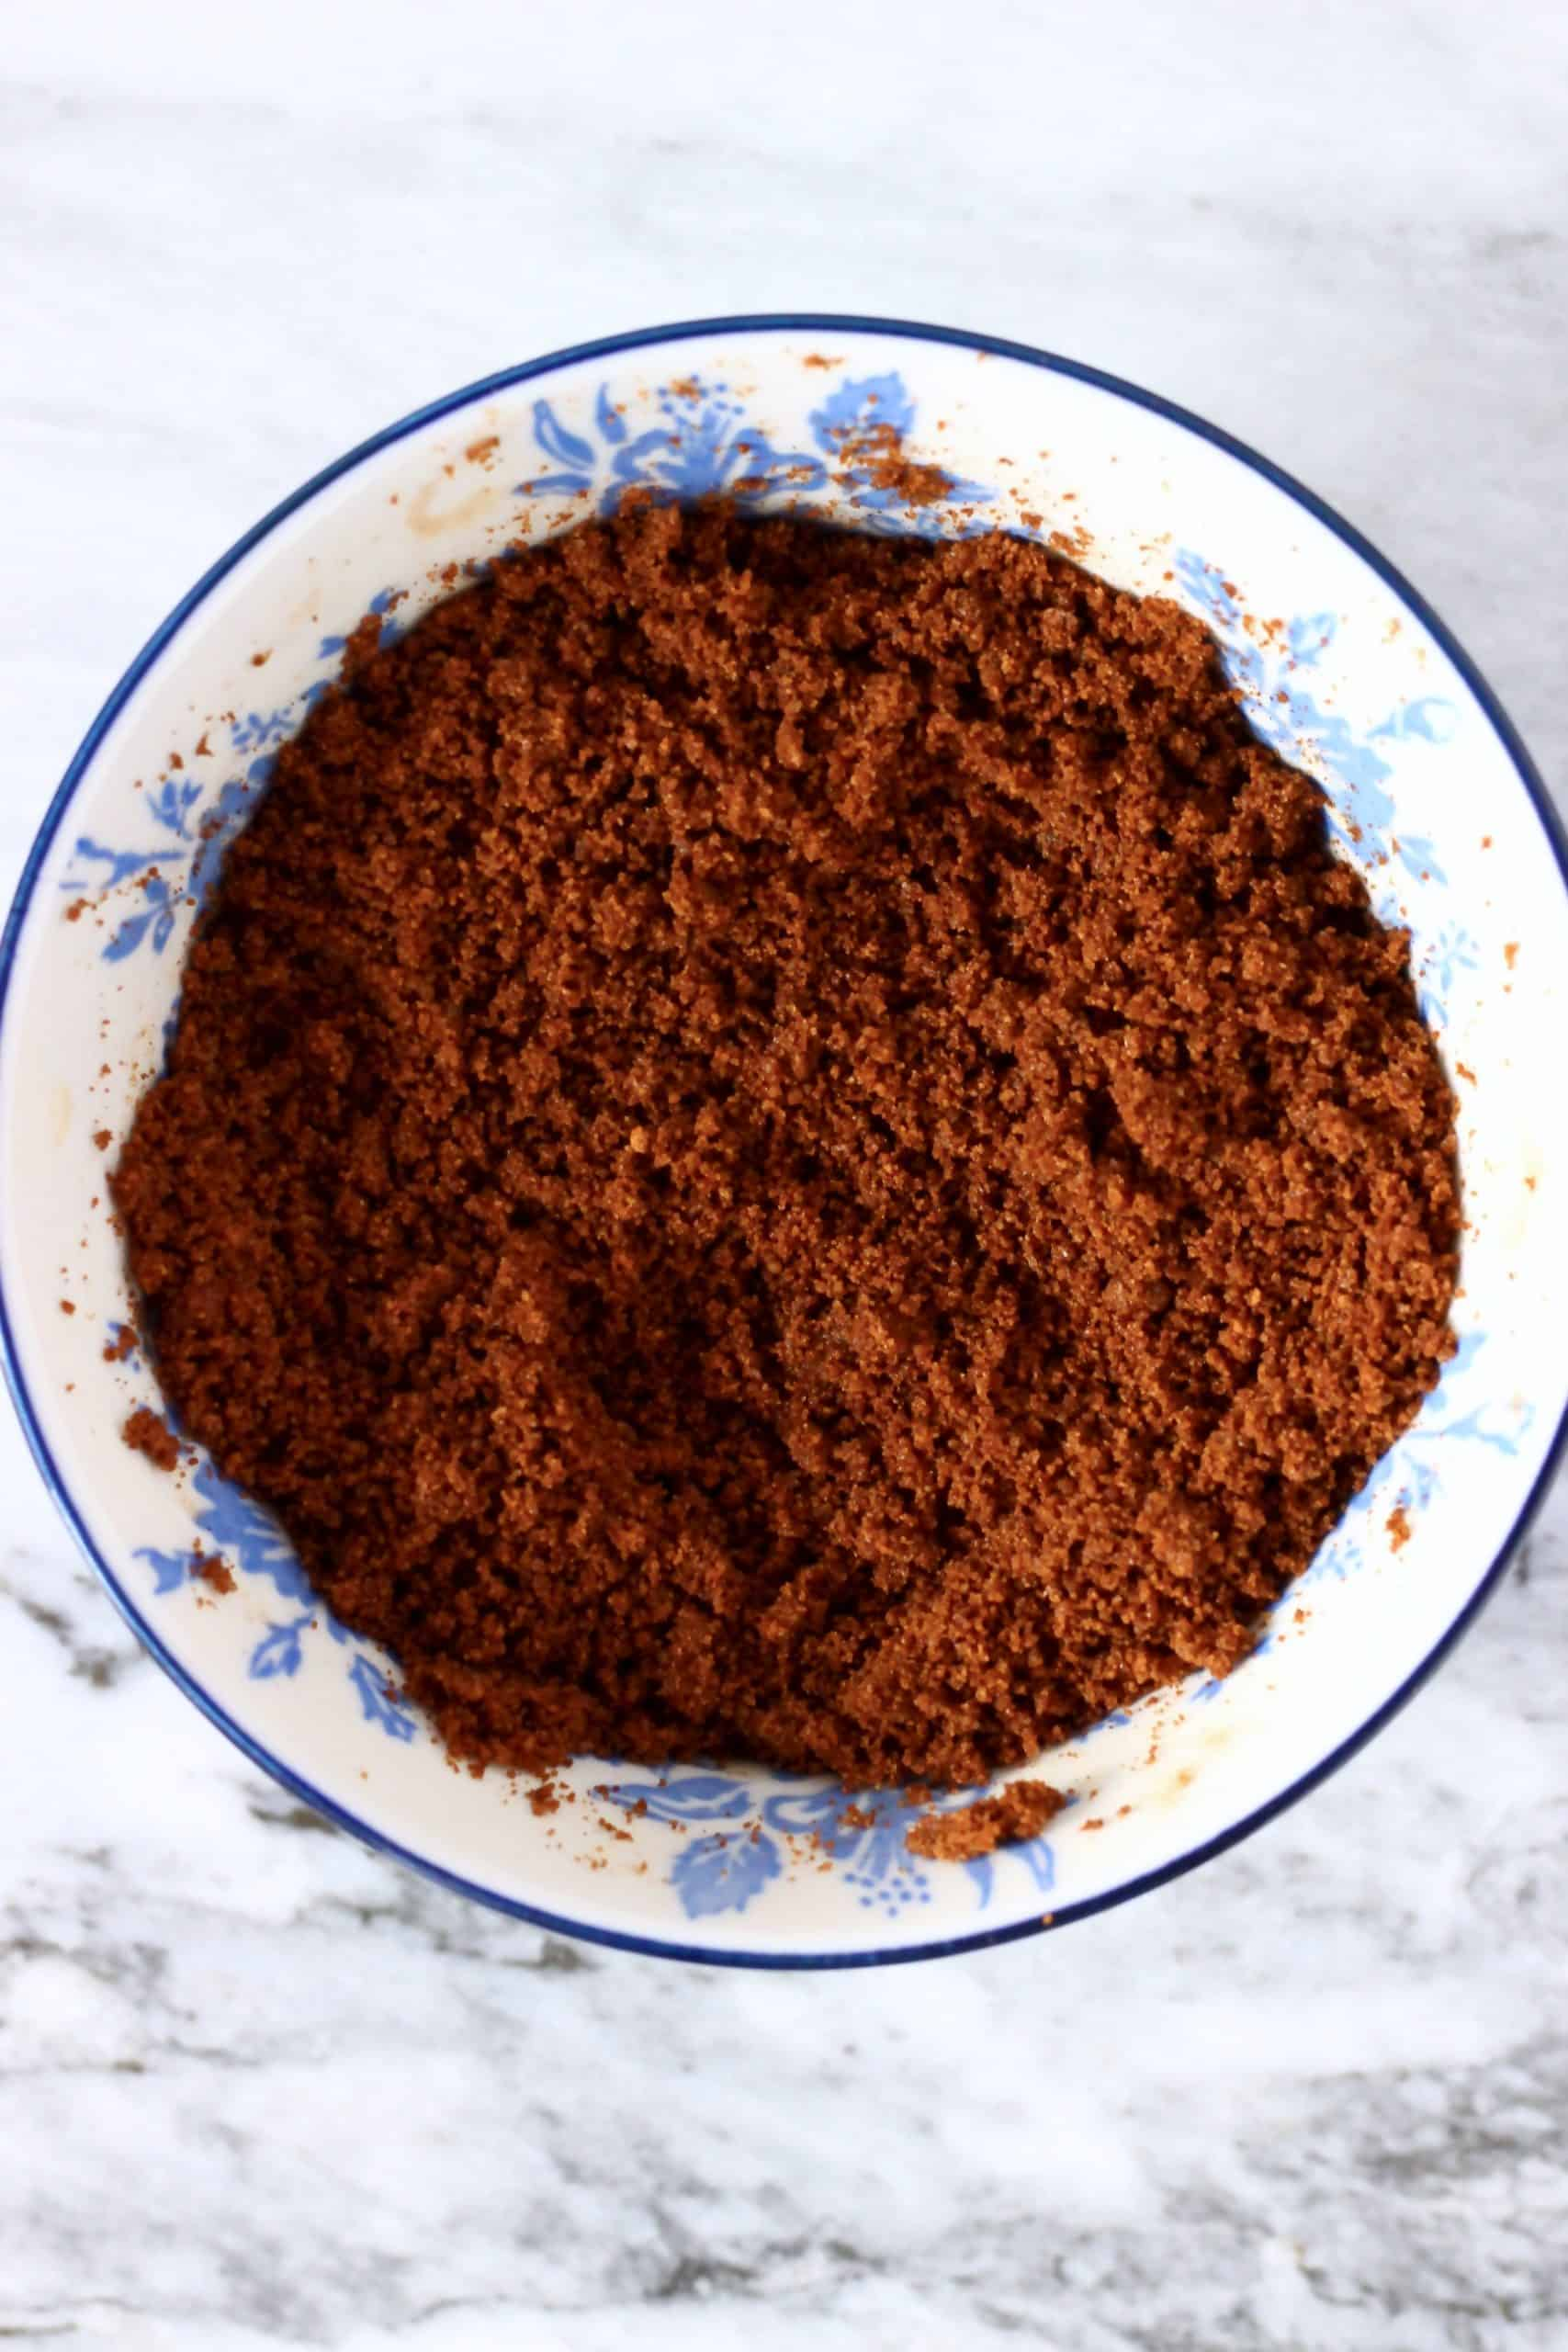 Cinnamon, coconut sugar and coconut oil mixed together in a bowl